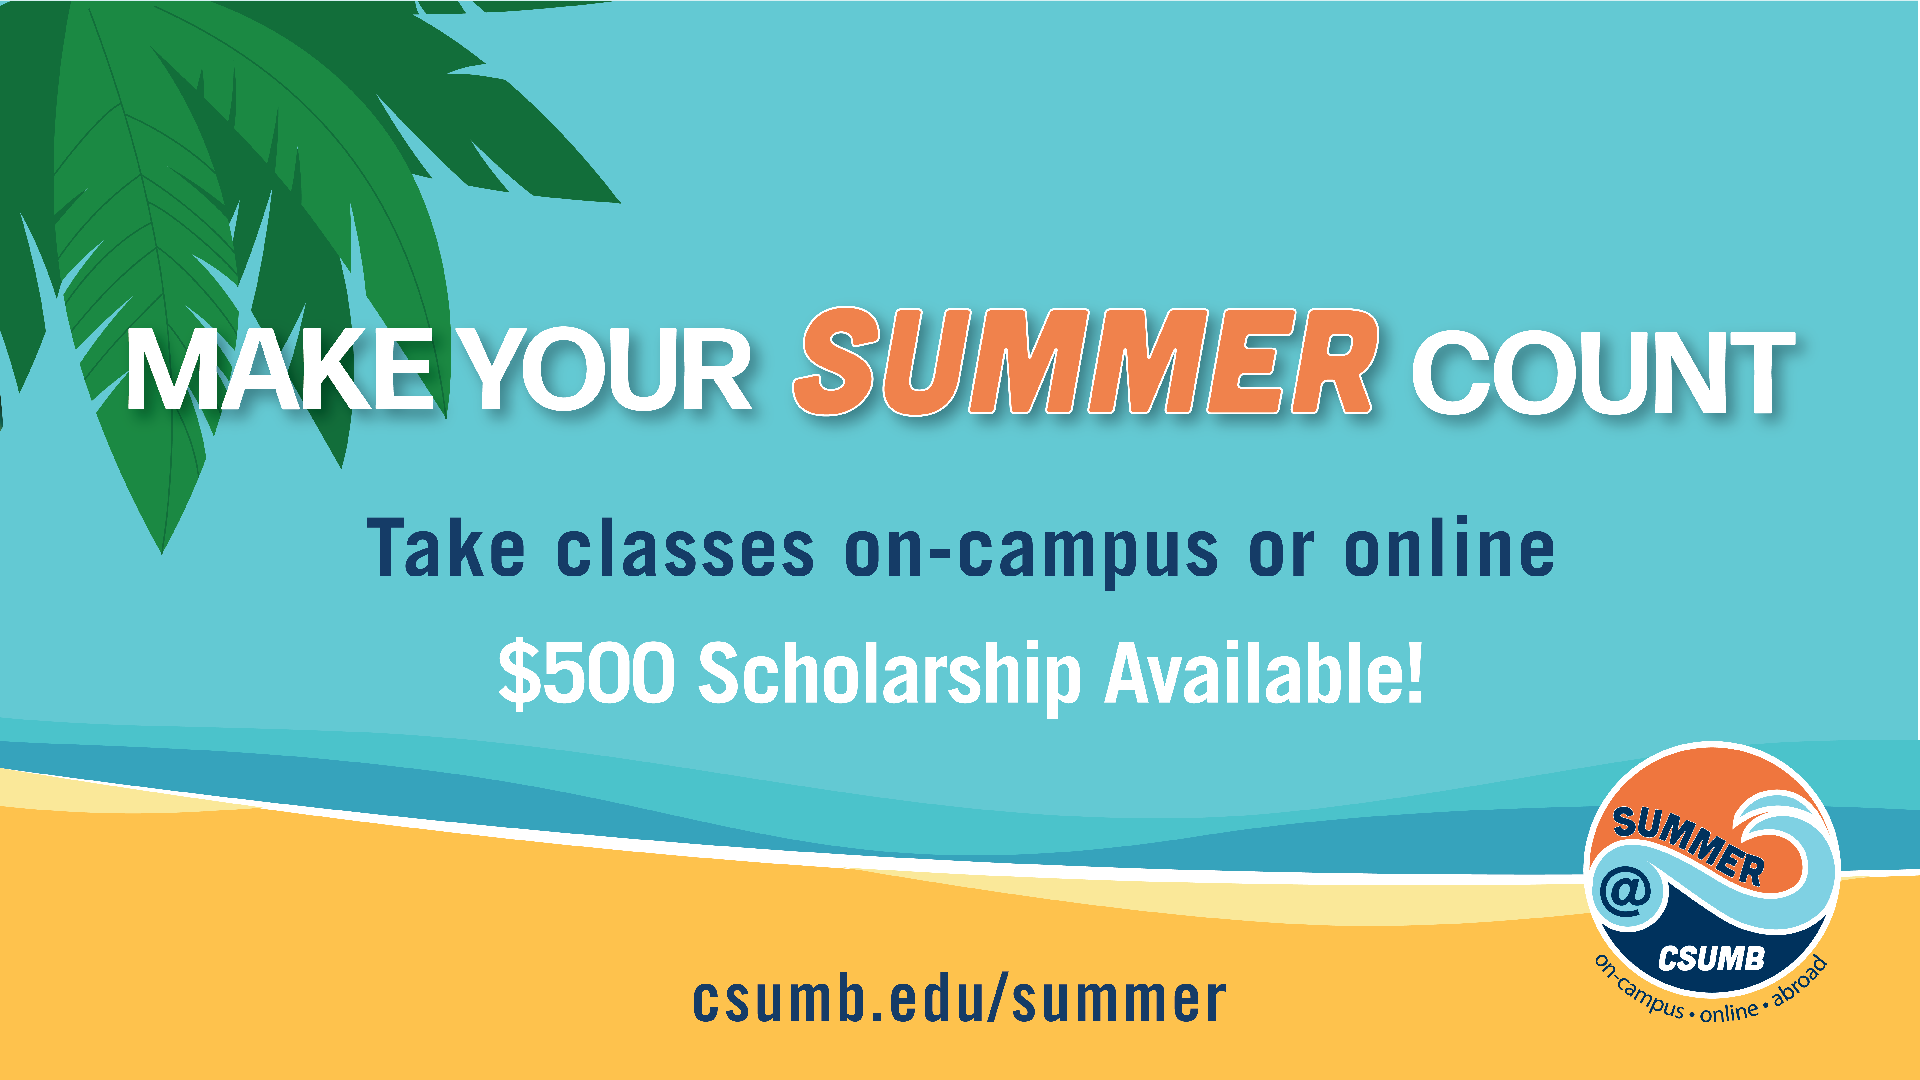 Jul31_College of Extended Education_Summer@CSUMB